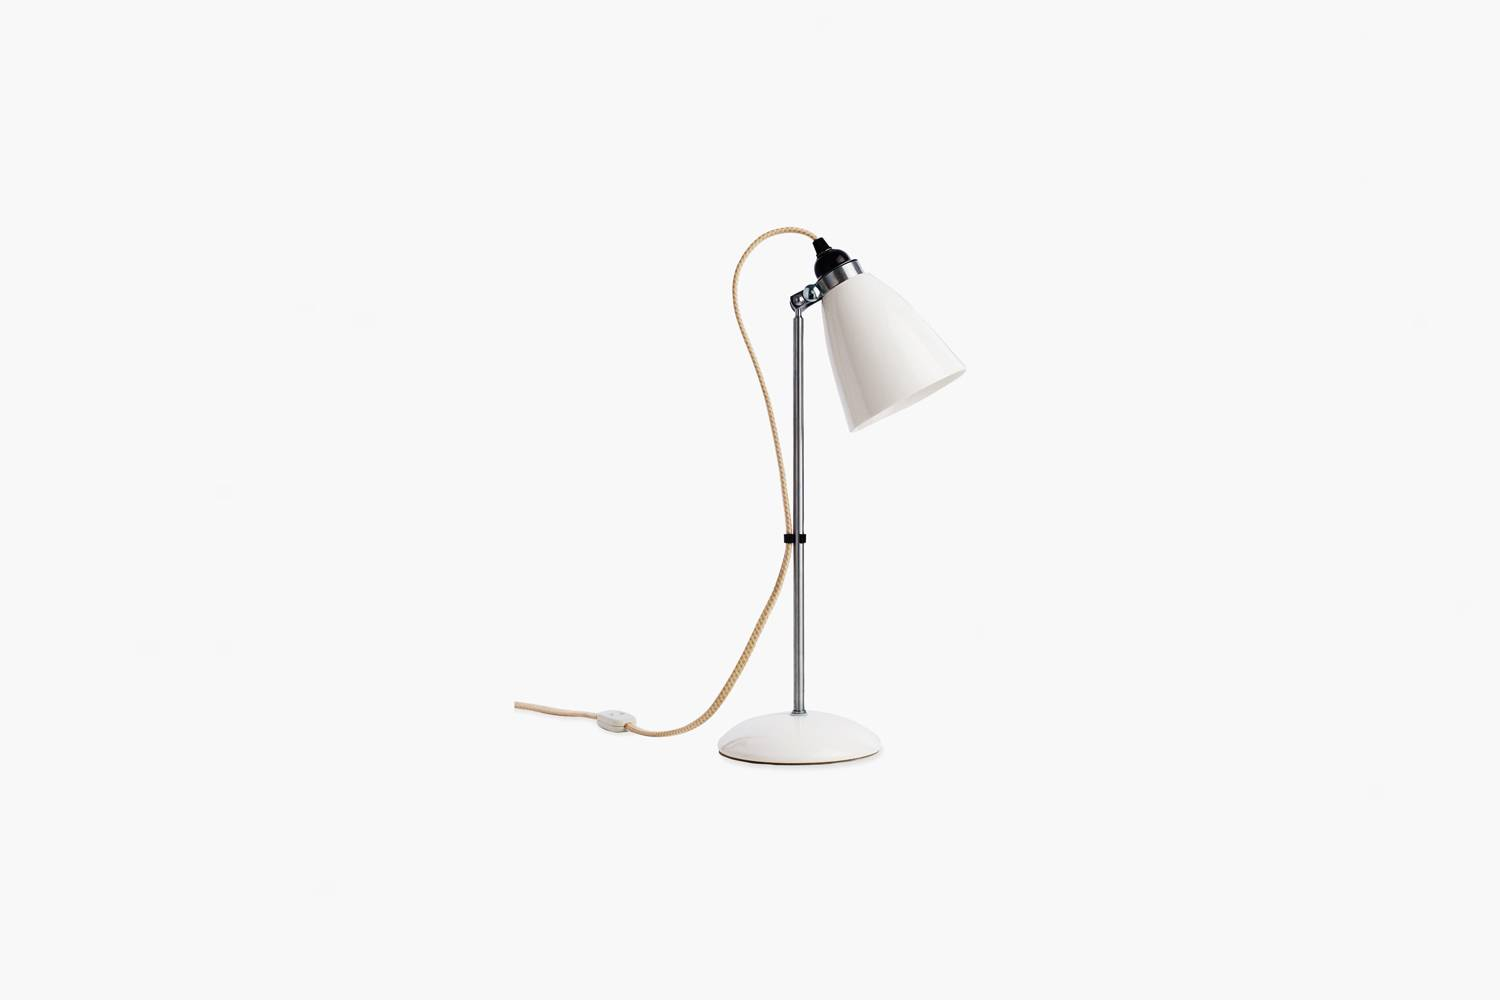 The Original BTC Hector Table Lamp is $359 at Design Within Reach.